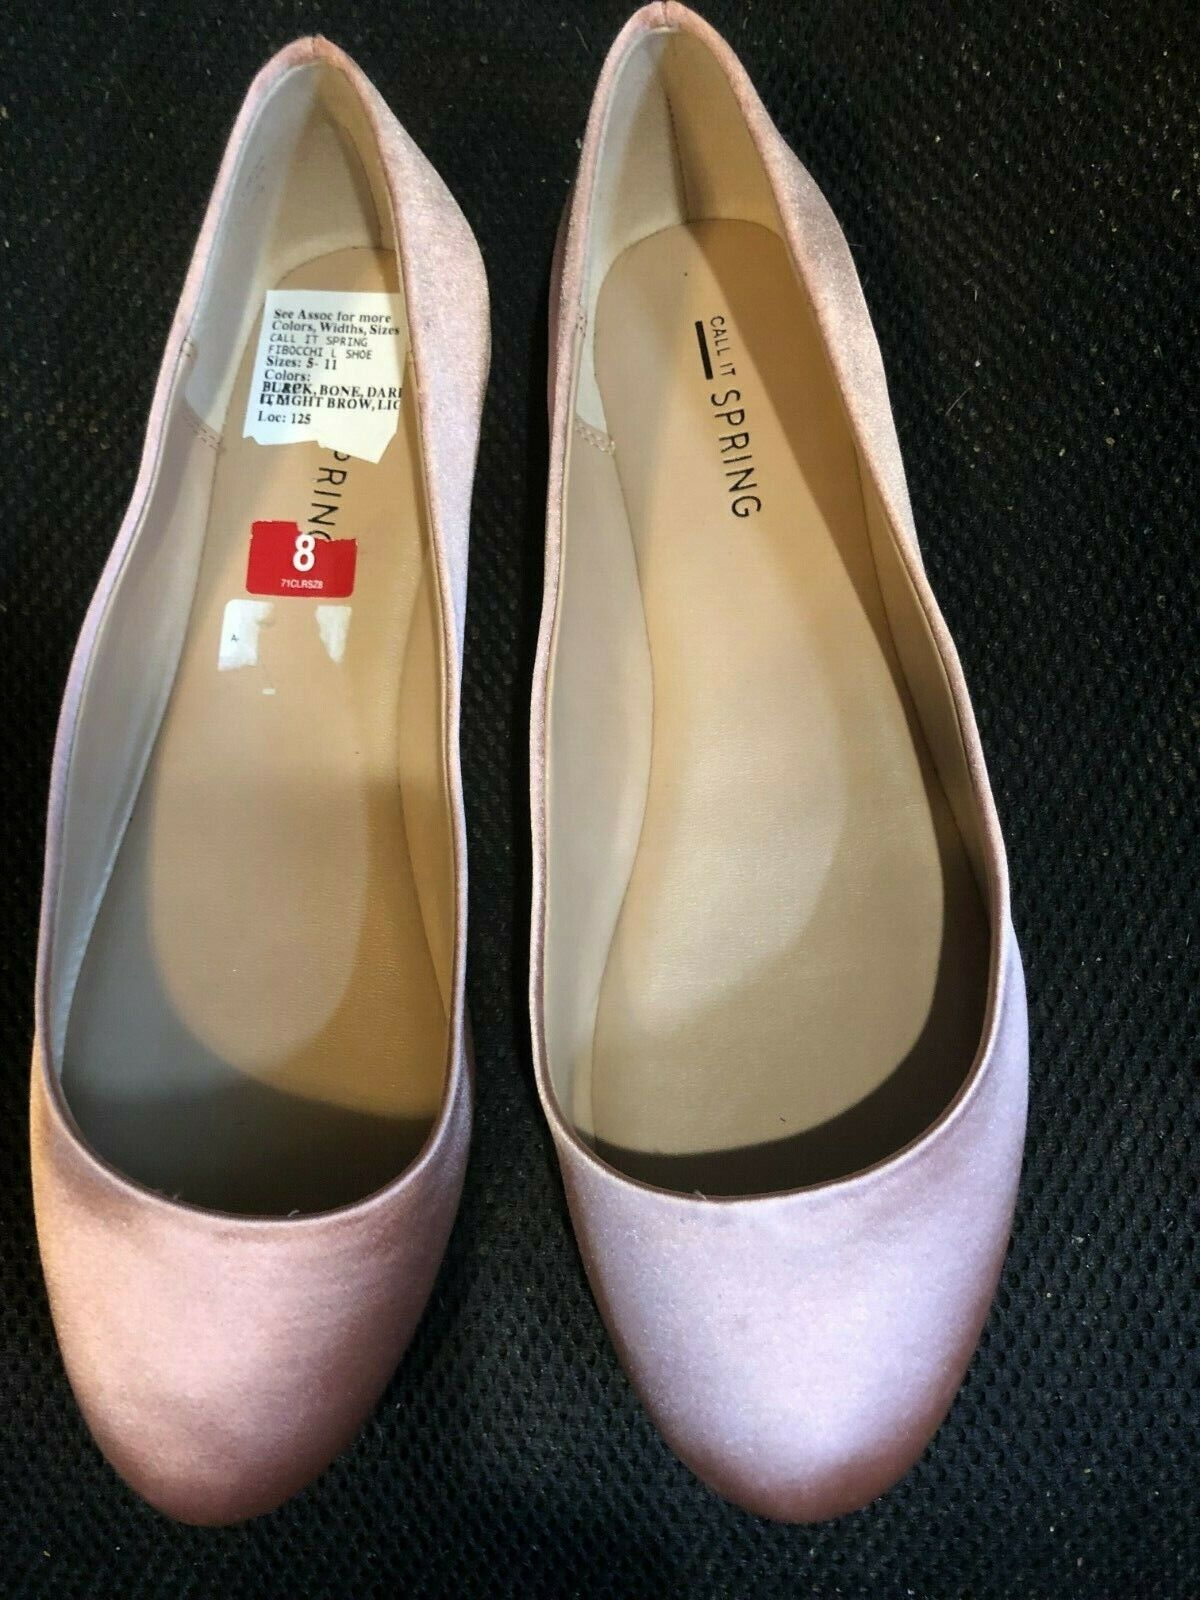 shoes, CALL IT SPRING, 1 8  heel (flats) pink pink sateen fabric, SZ 8 NEW